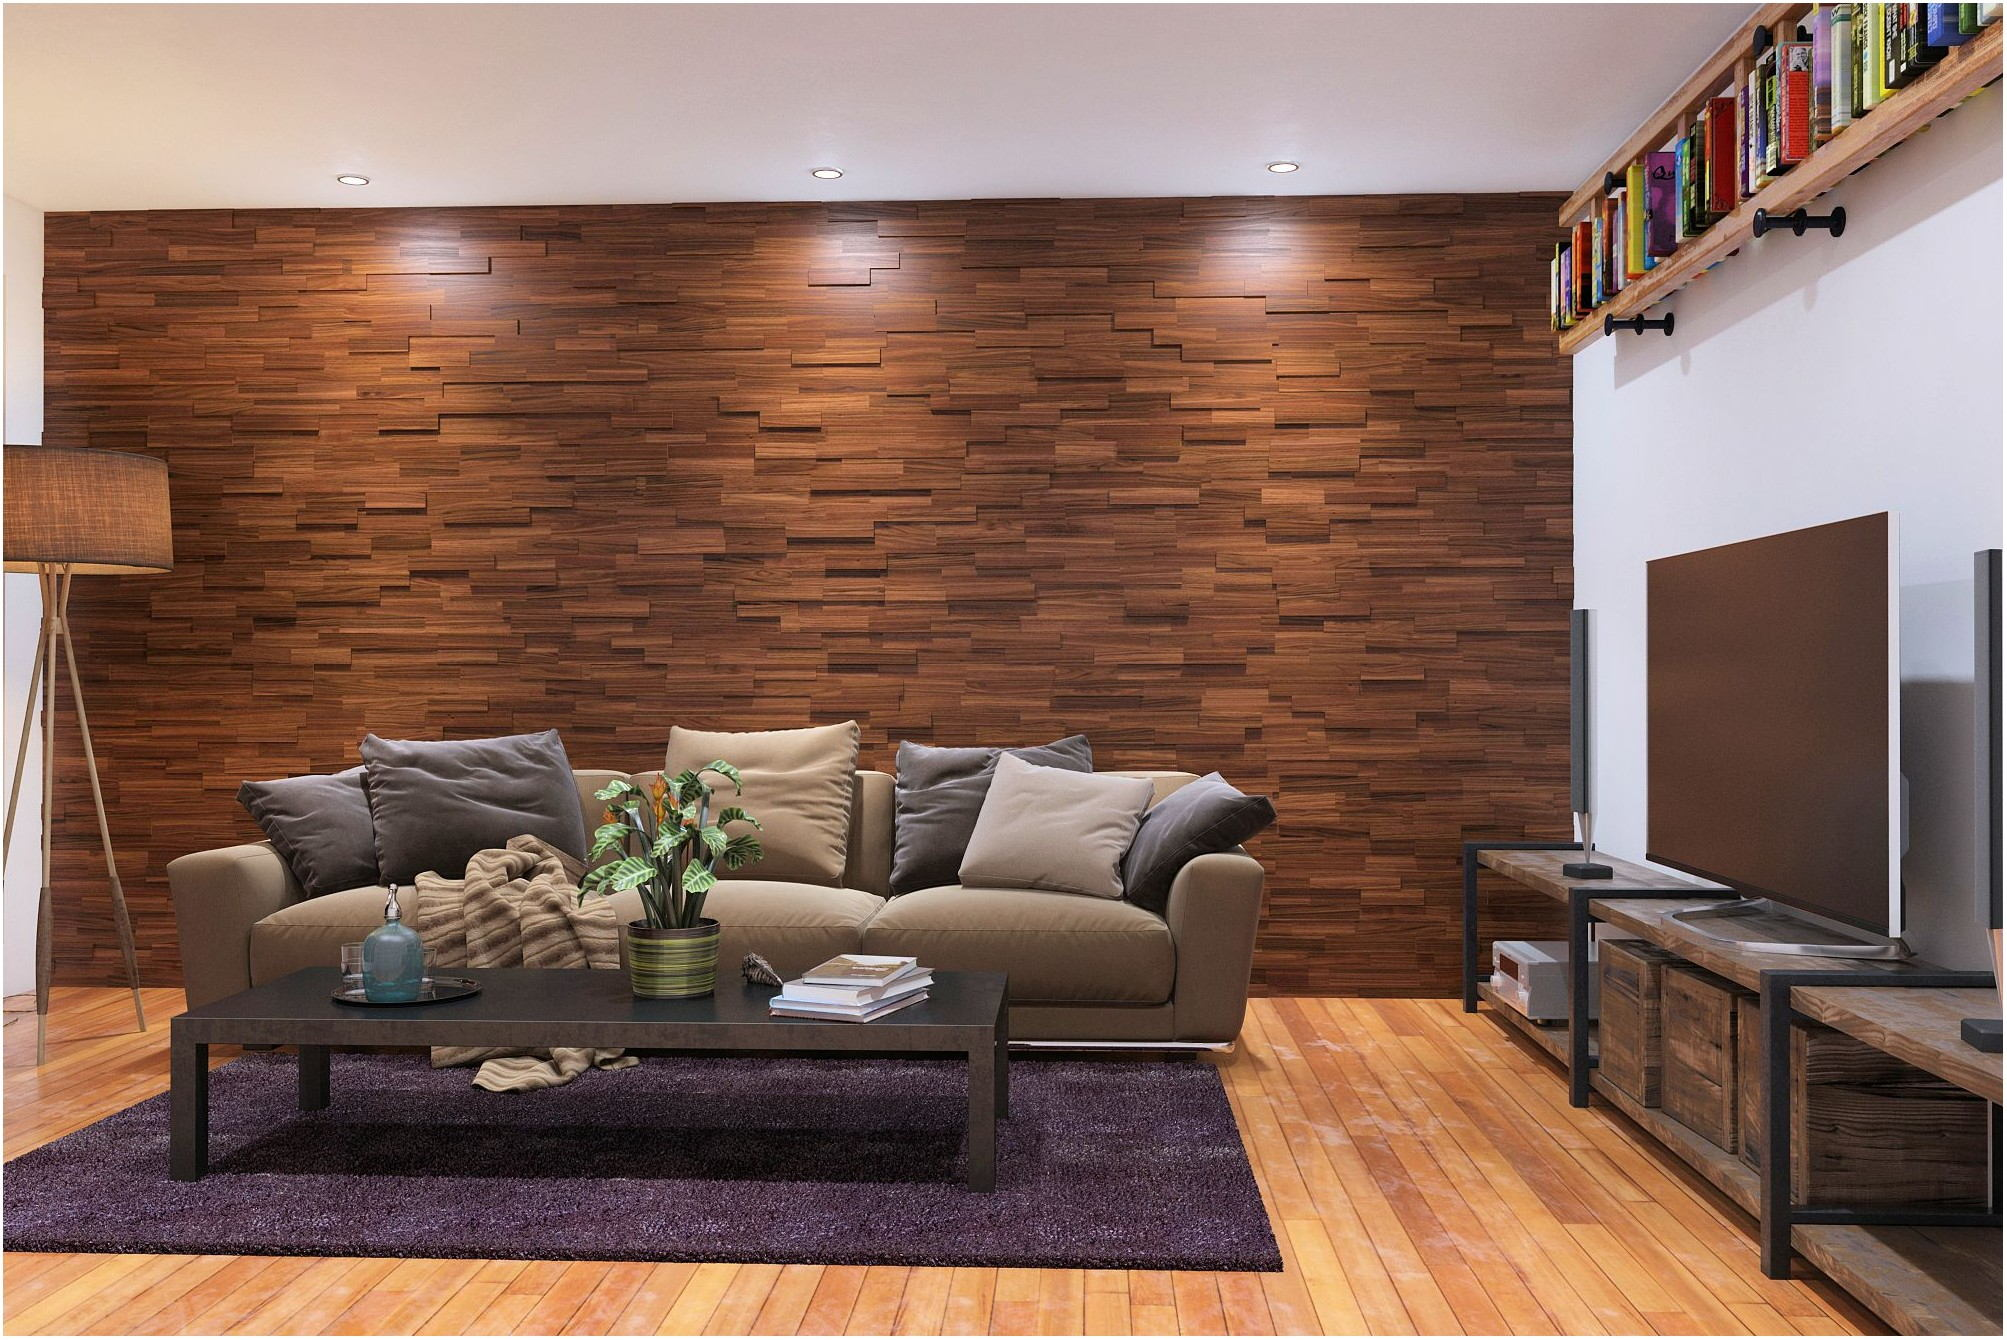 Interior Design Living Room Wall Paneling